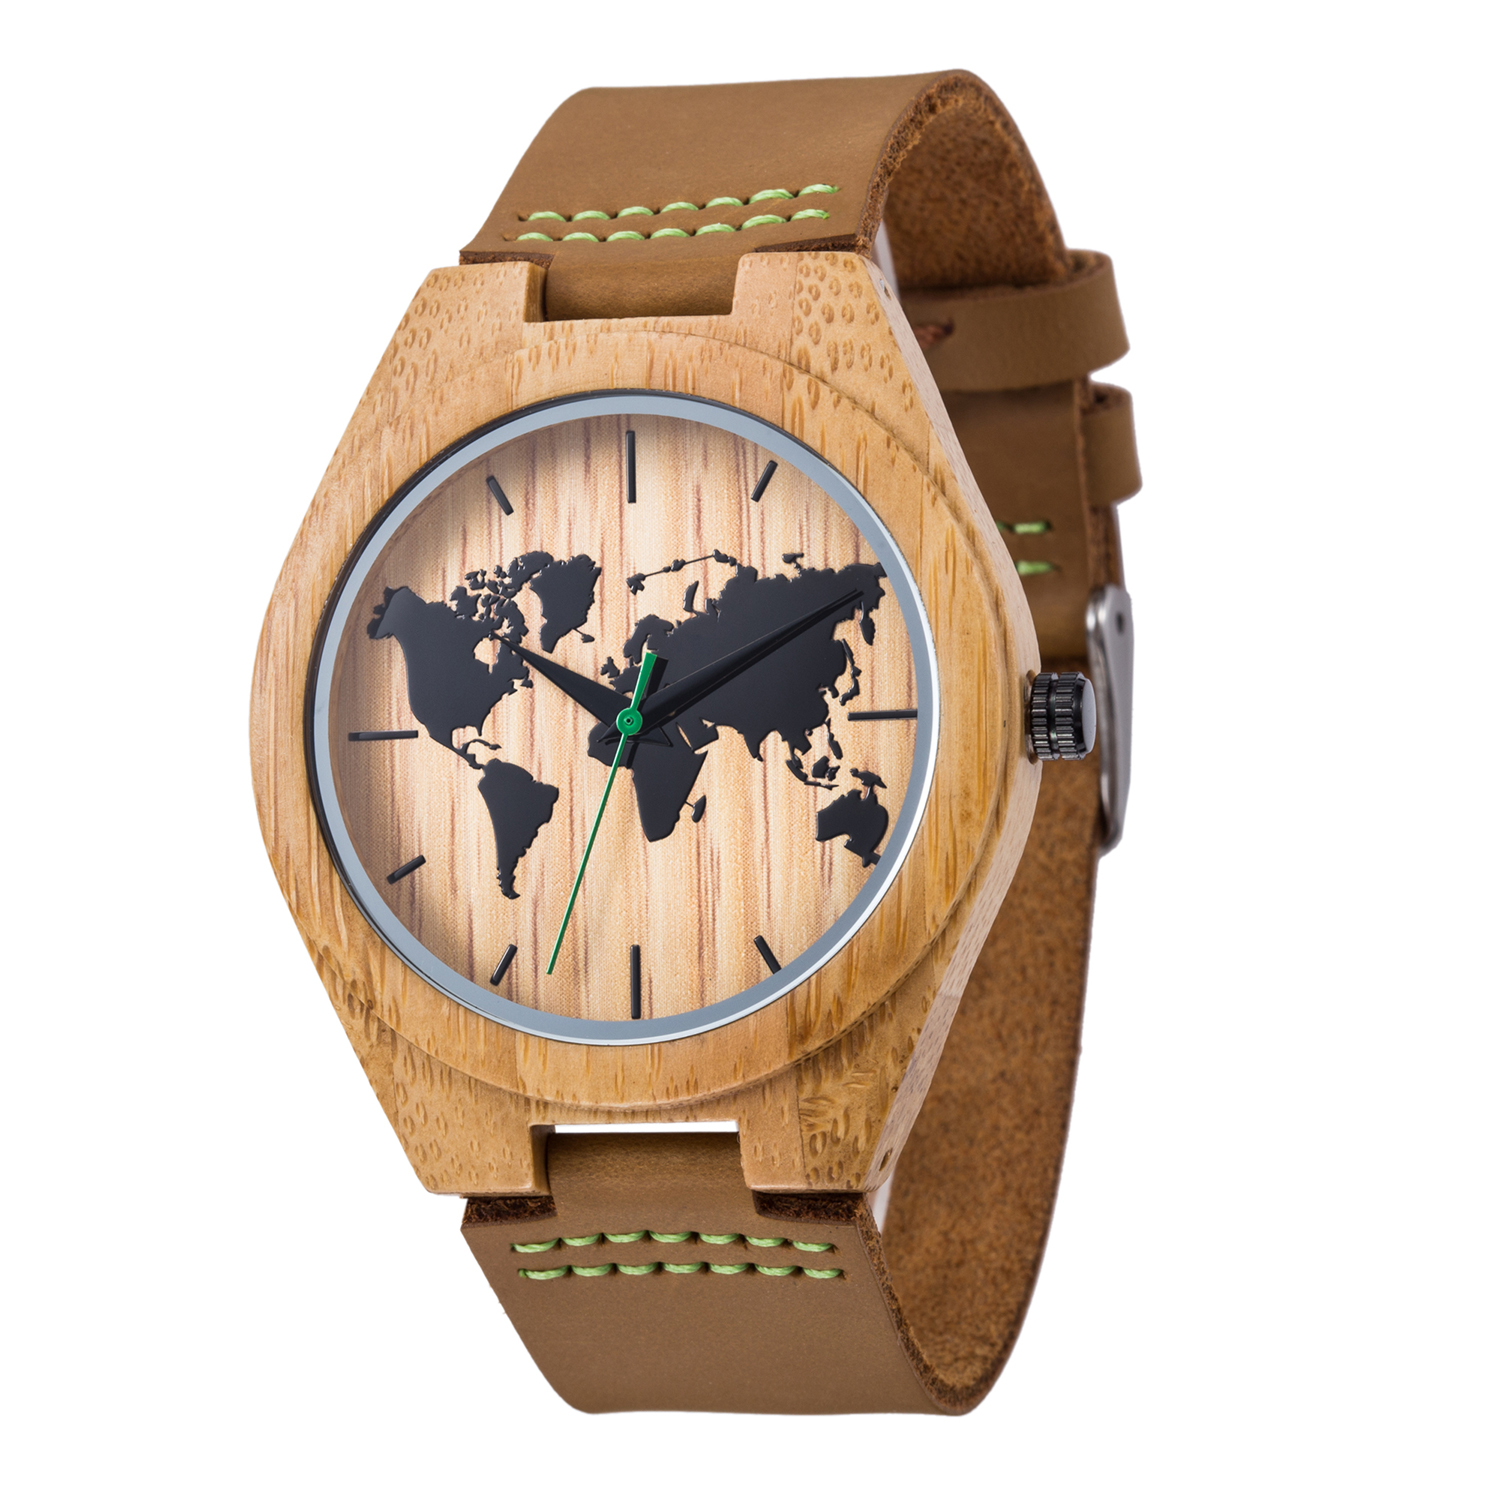 New World Map Mens Genuine Leather Quartz Watch Wood Bamboo Male Wrist Watch Luxury Brand Reloj de Madera Genuine with Gift Box fashion top gift item wood watches men s analog simple bmaboo hand made wrist watch male sports quartz watch reloj de madera